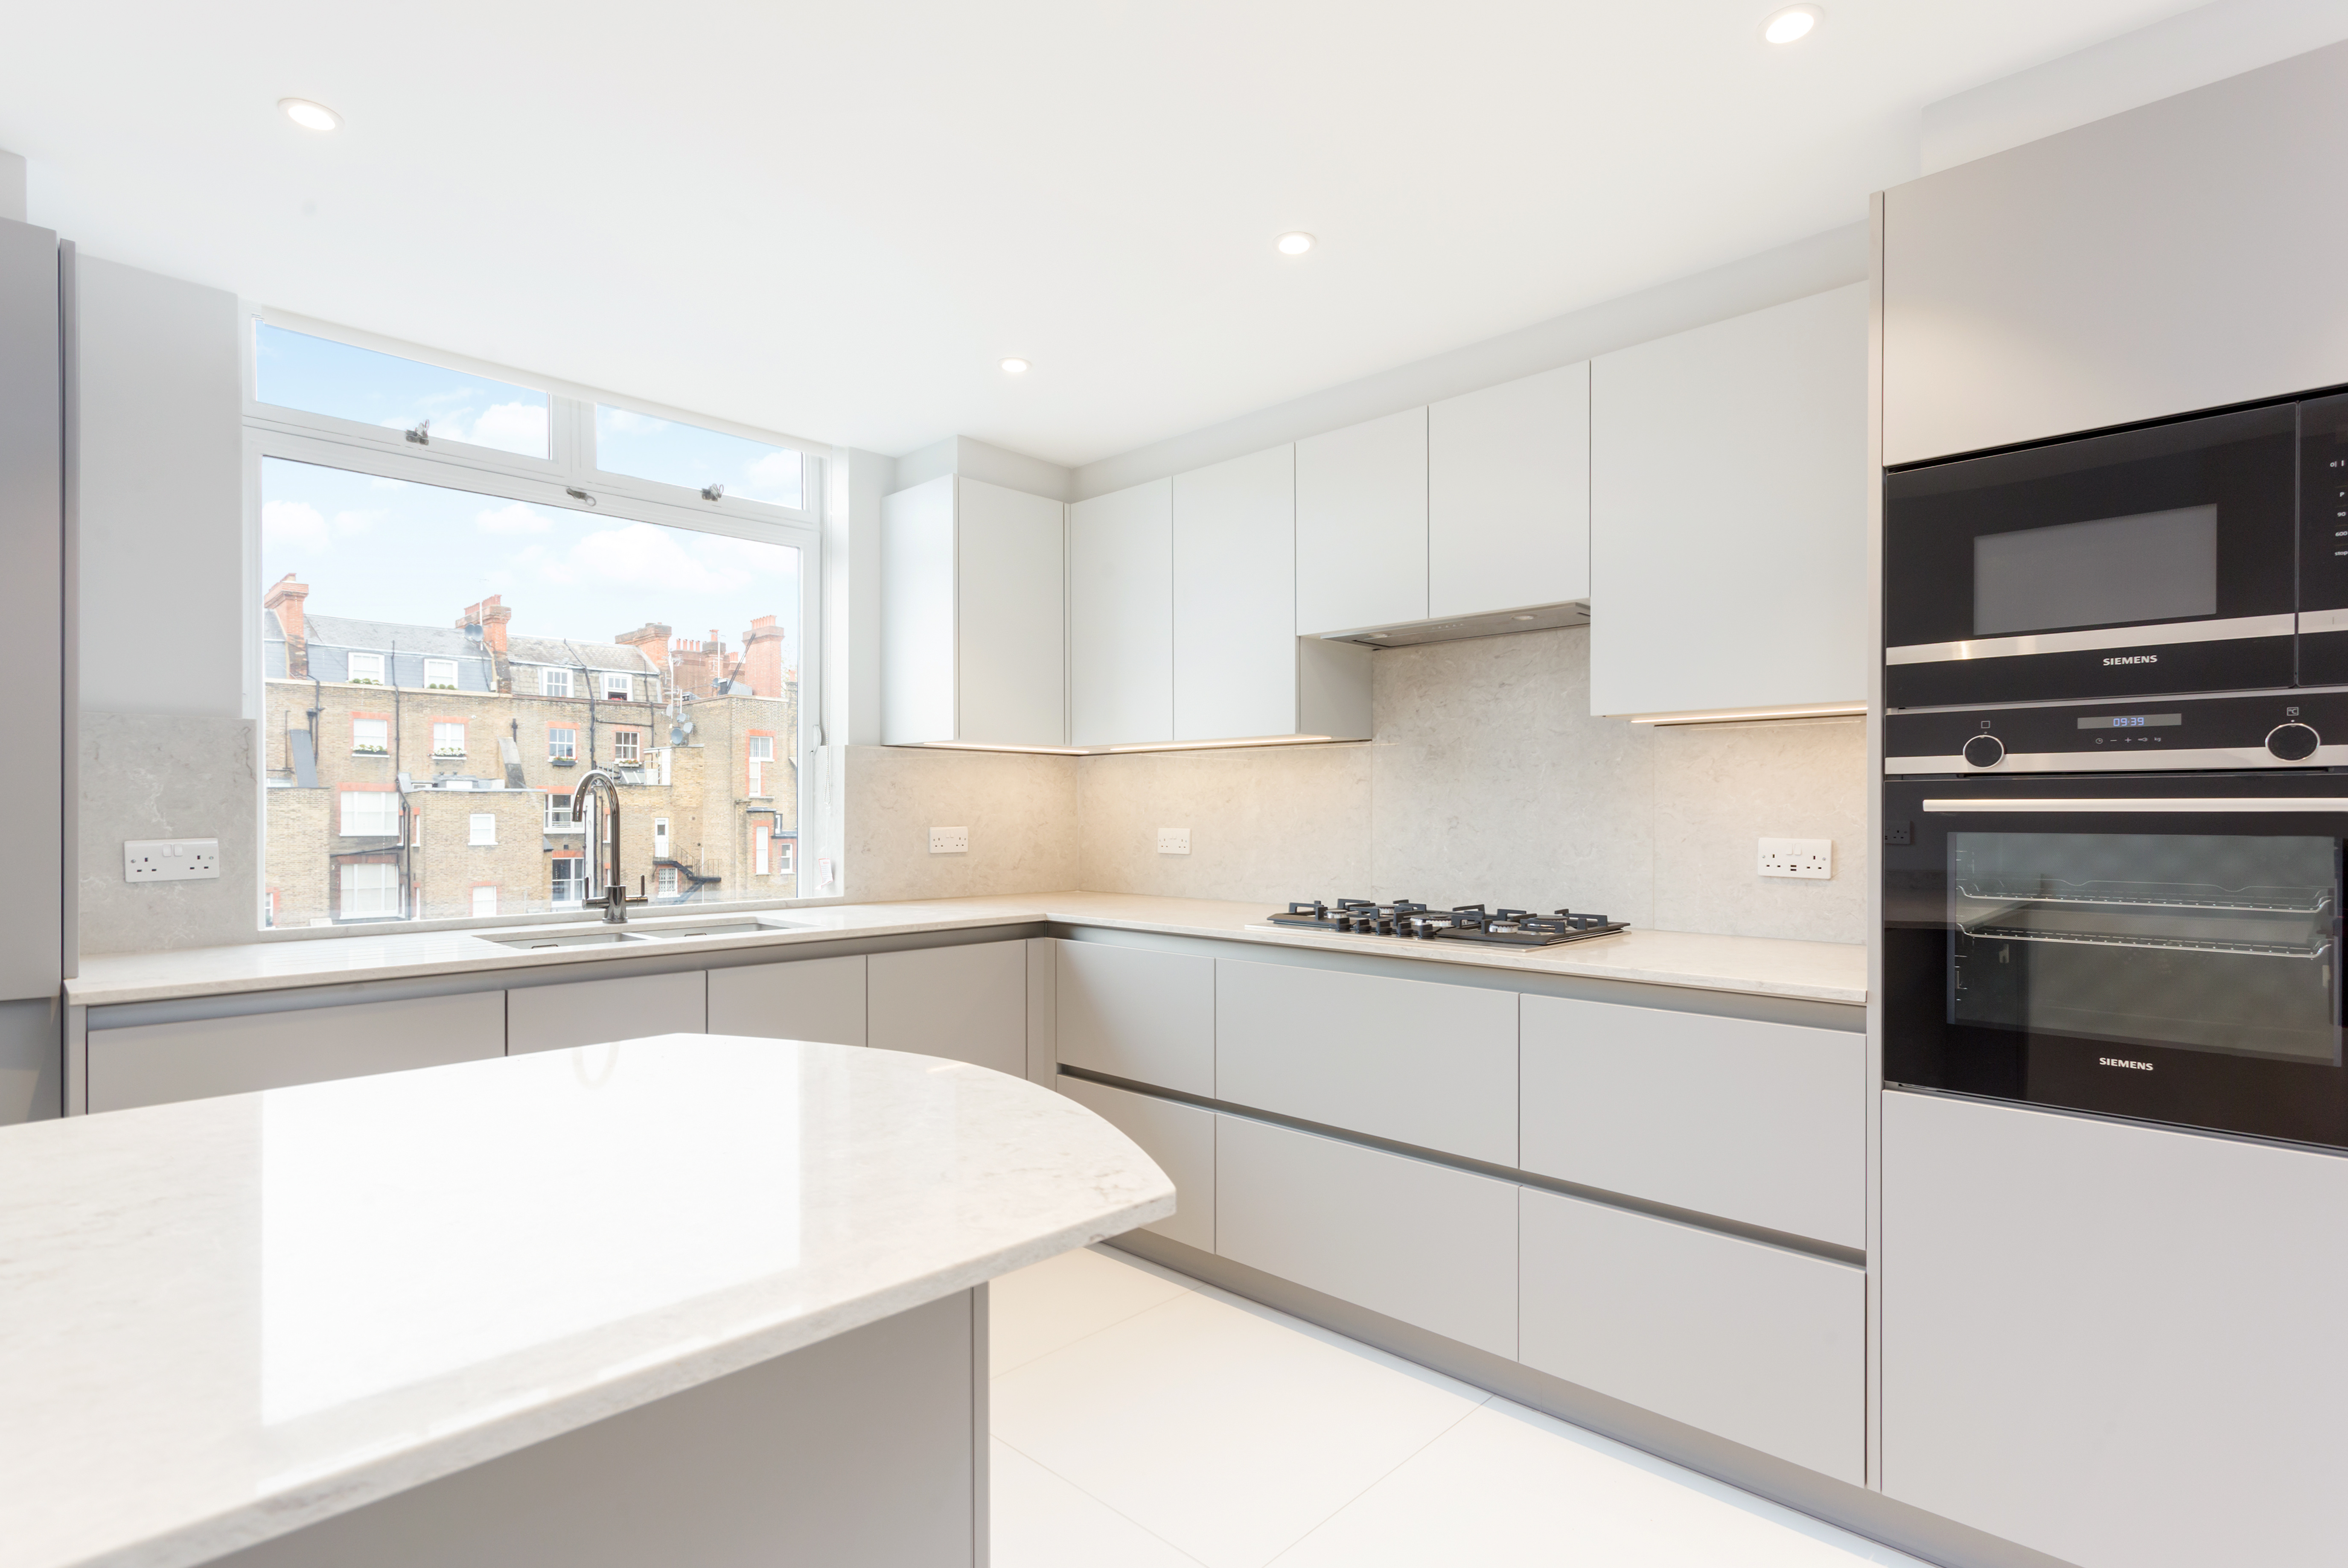 Kitchens for London's Great Estates